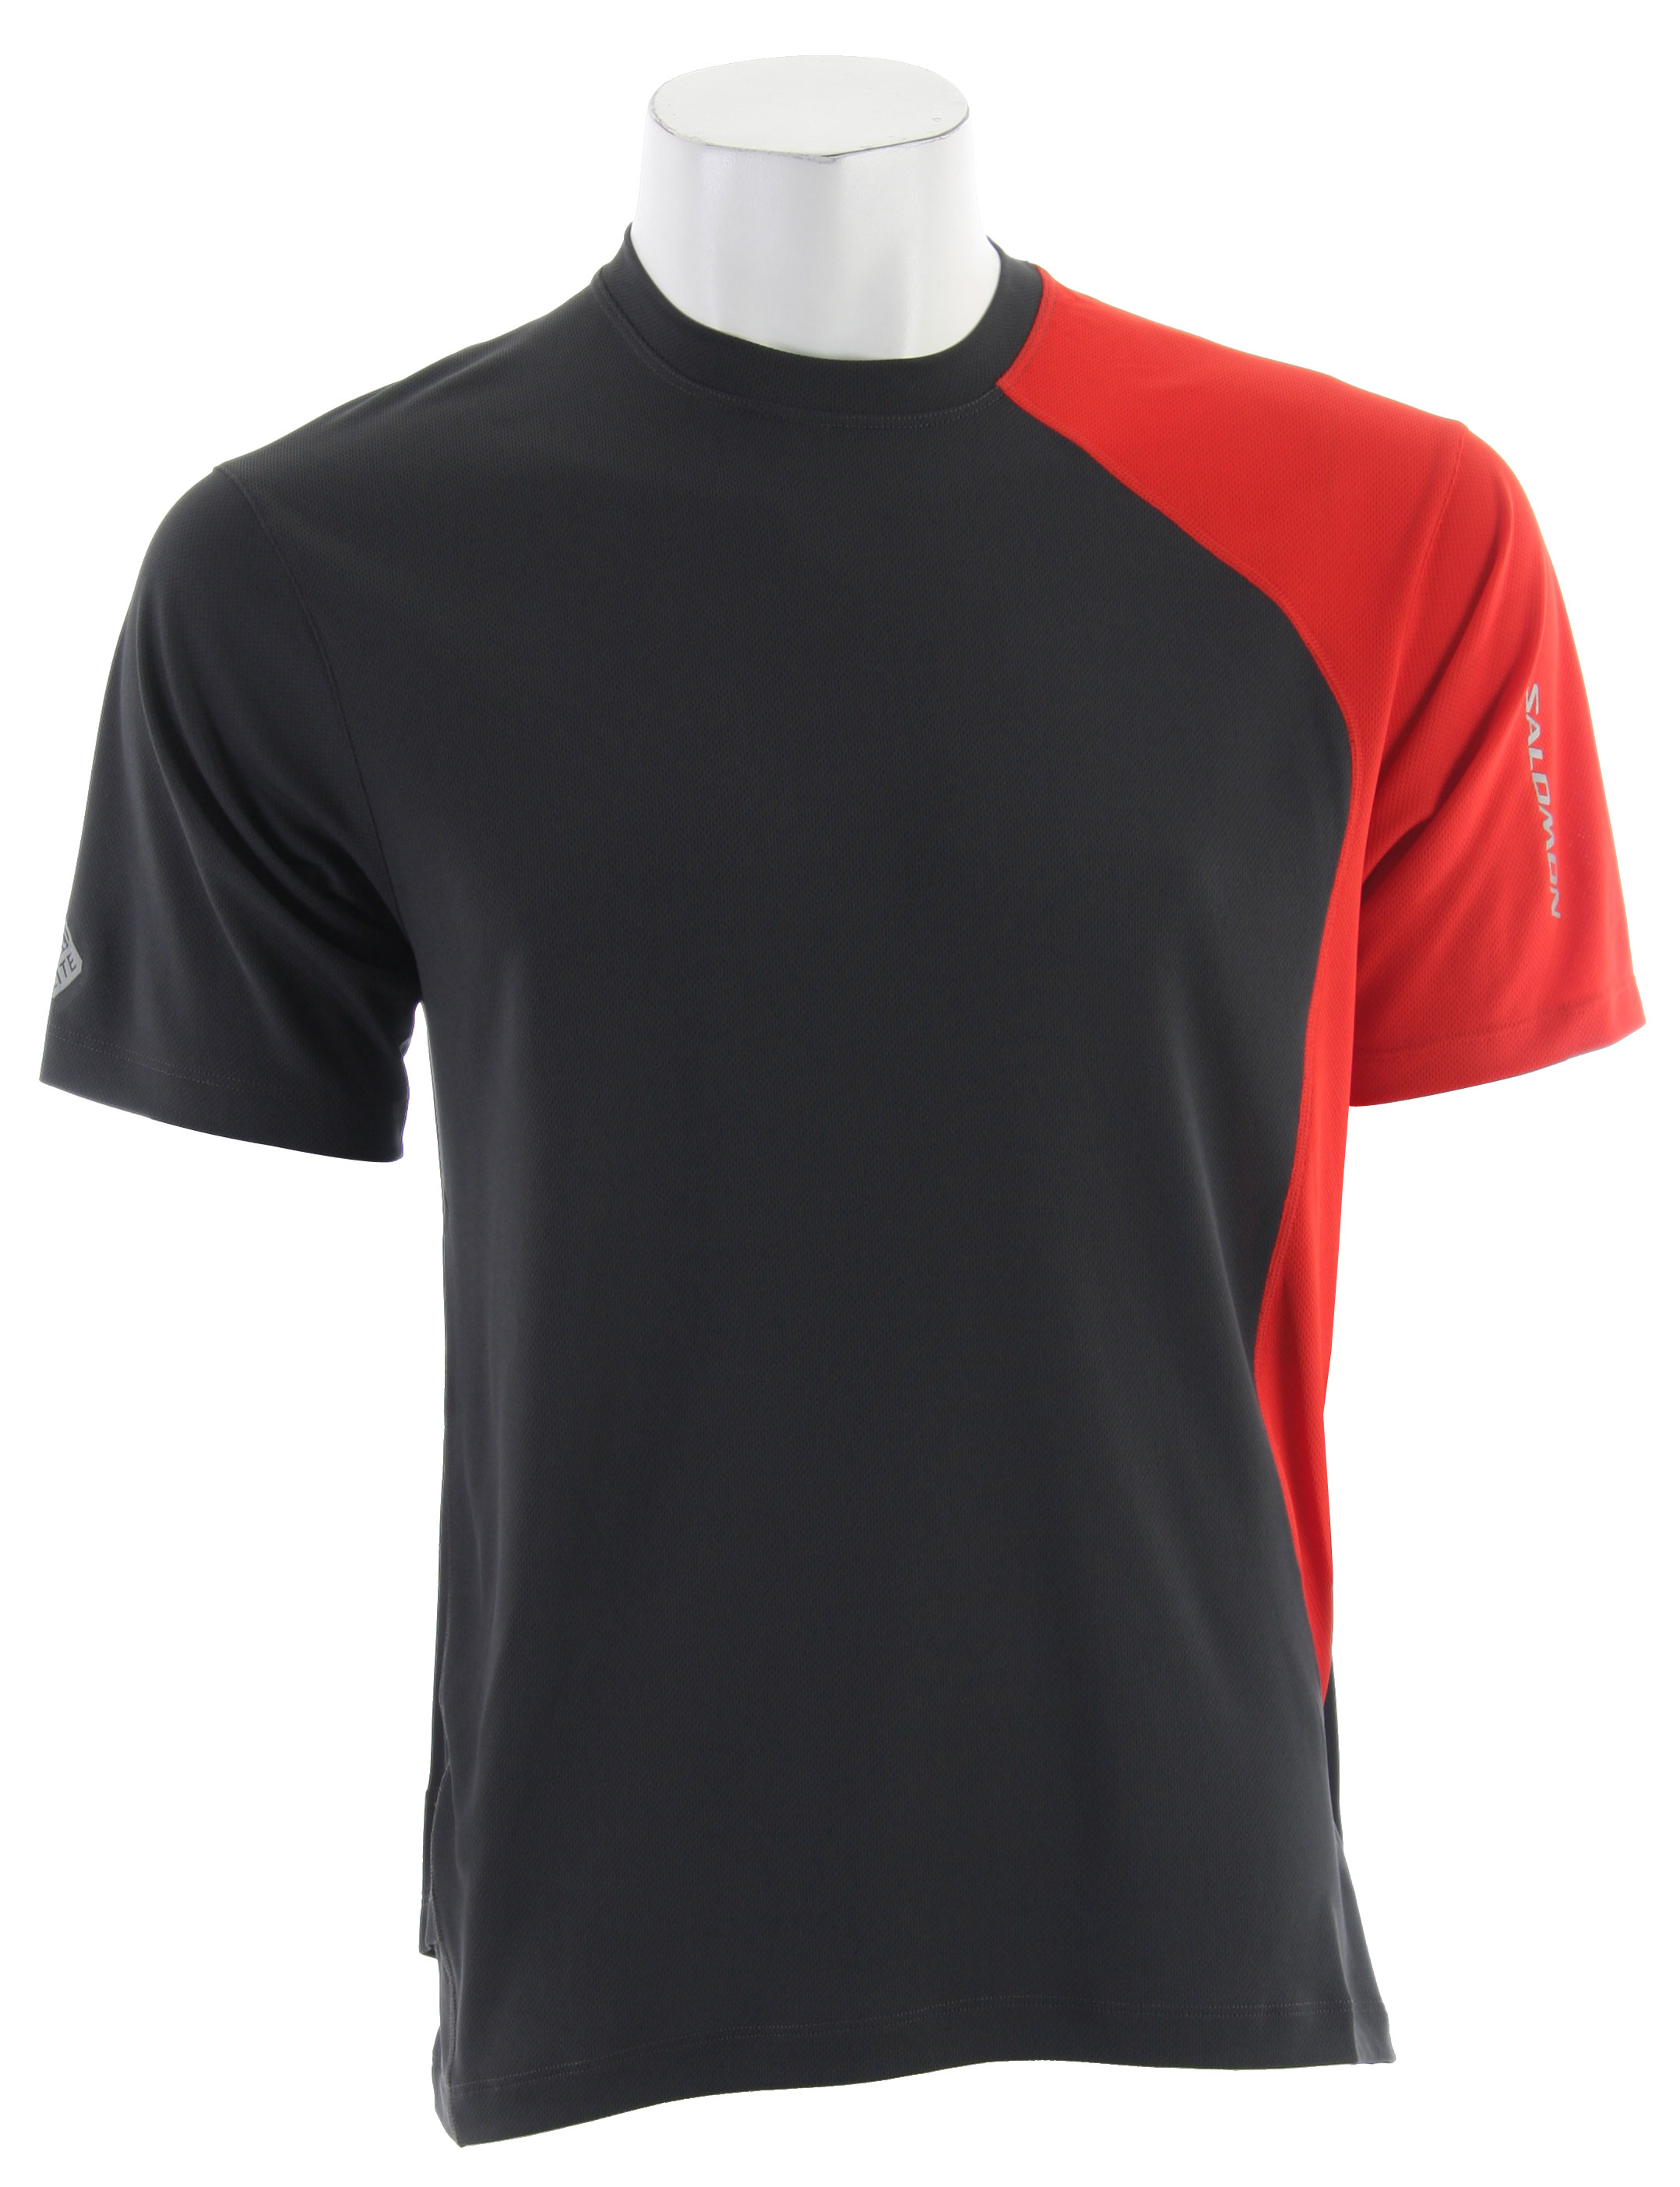 Fitness The Salomon Trail III Tech T-Shirt is relaxed fitting, versatile, light weight with stash pocket for running and outdoor sports.Key Features of the Salomon Trail III Tech T-Shirt: Smart Skin Actilite Polymockeylet Stash Pocket Flatlock Seams Reflective Branding Front & Back Composition Body : Polyester 100% Relax Fit Weight 110 G / 3,88 Oz - $28.95